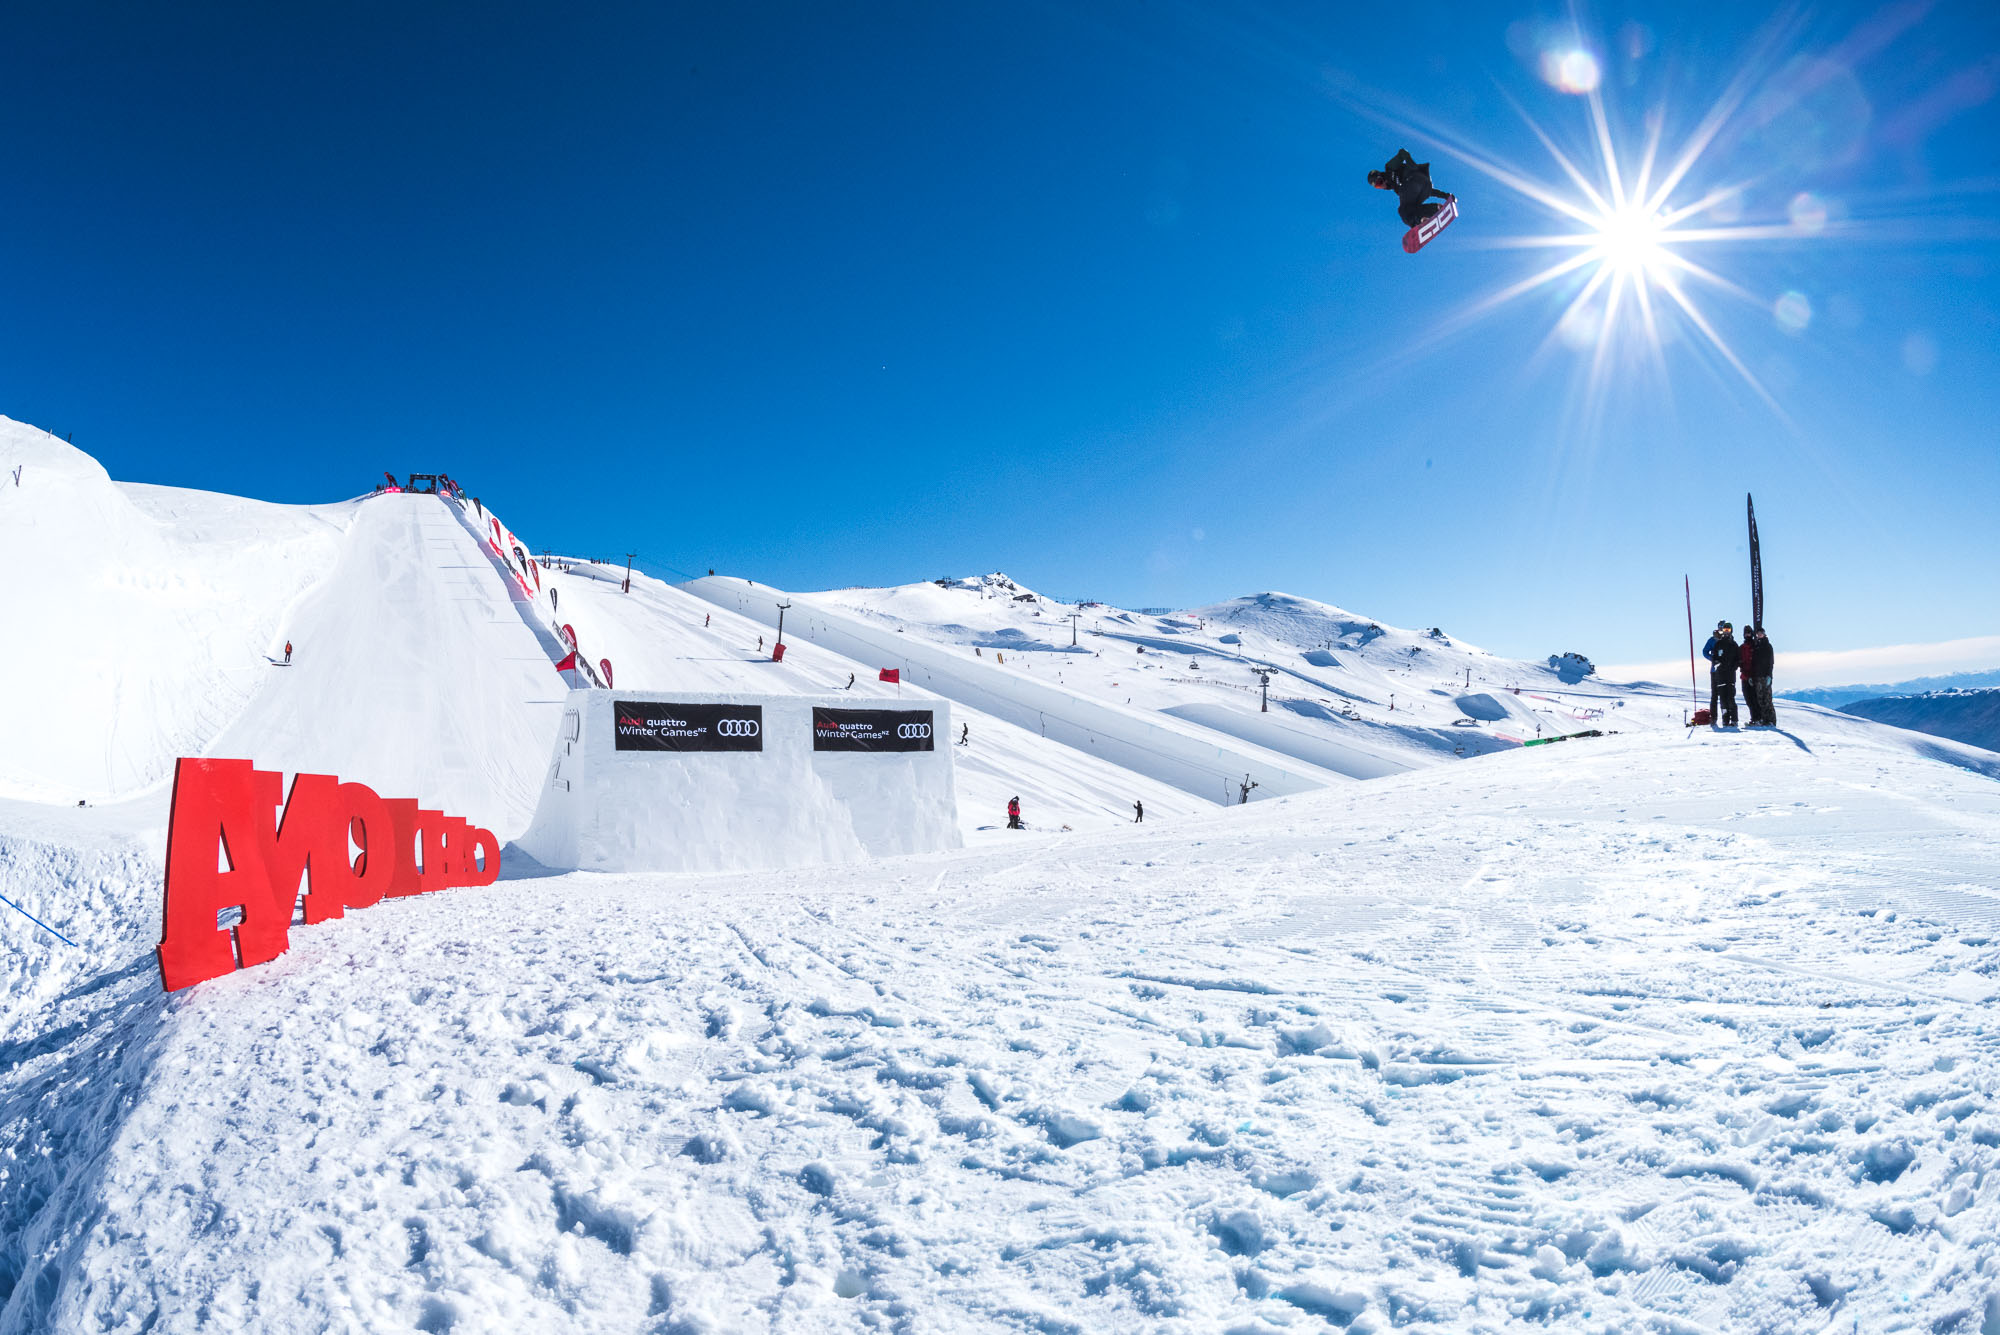 WINTER GAMES - AUDI QUATTRO WINTER GAMES NZ, 2018